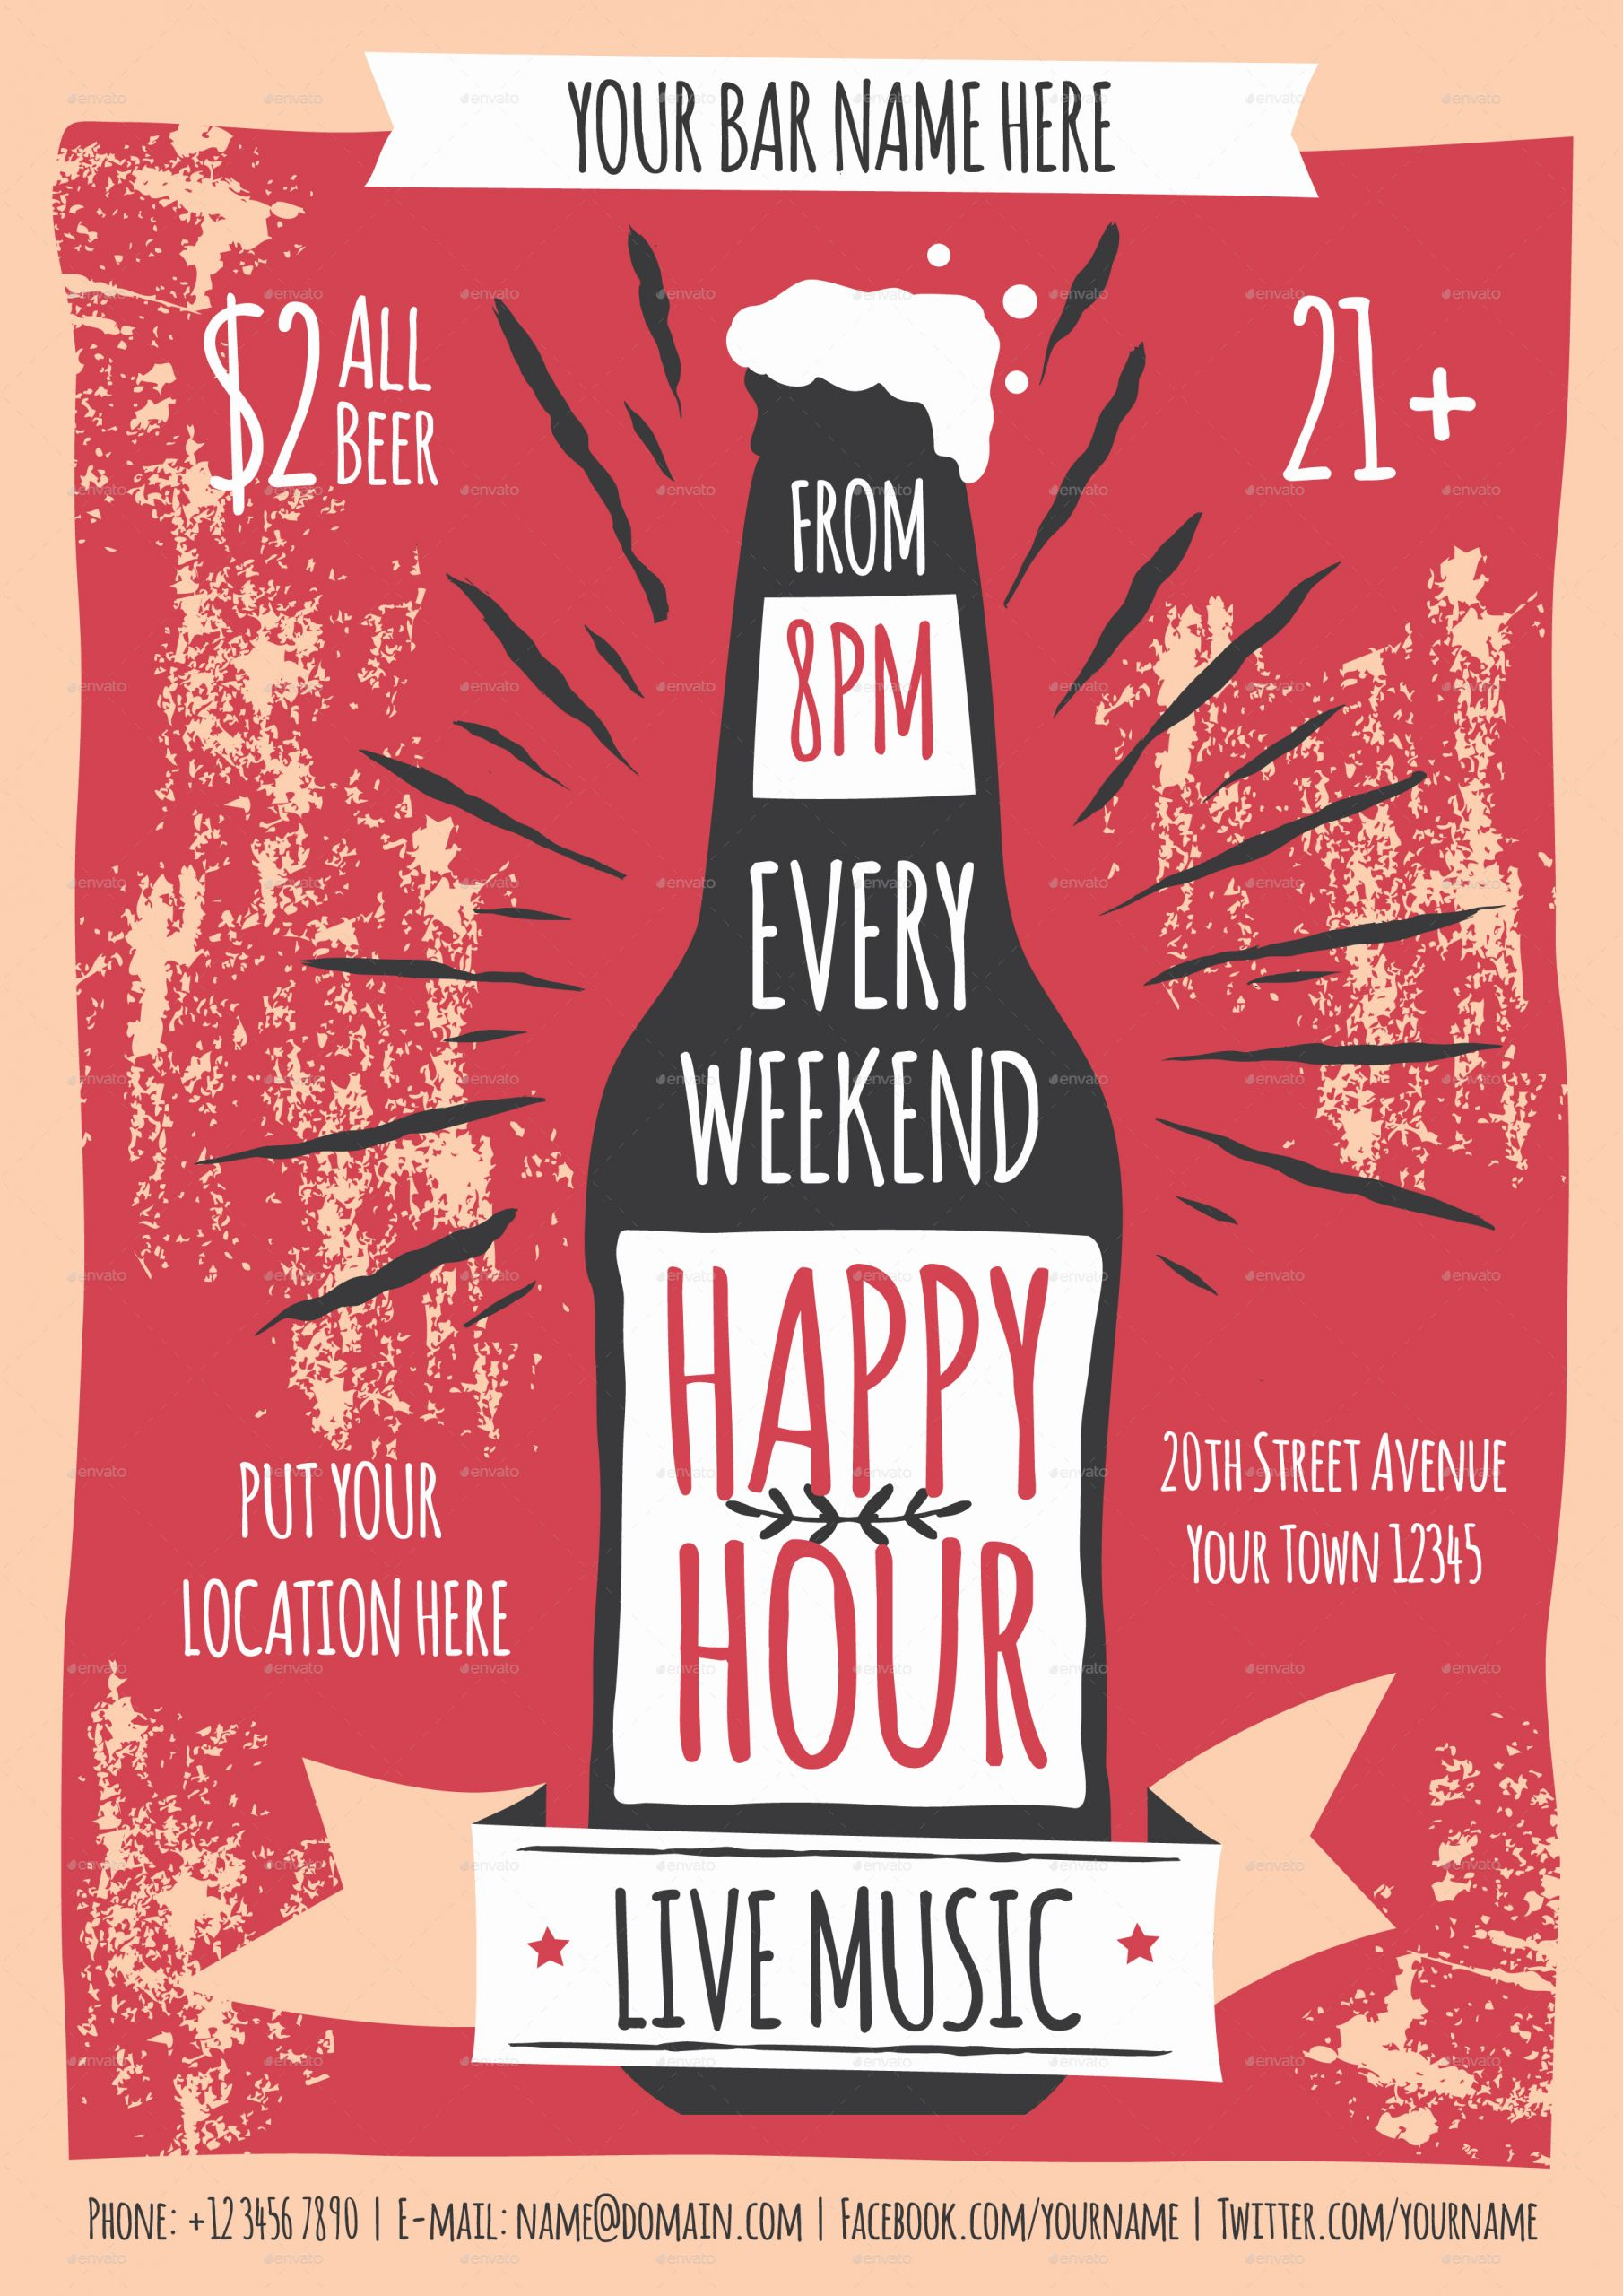 Happy Hour Menu Template Inspirational Happy Hour Flyer Template by Me55enjah